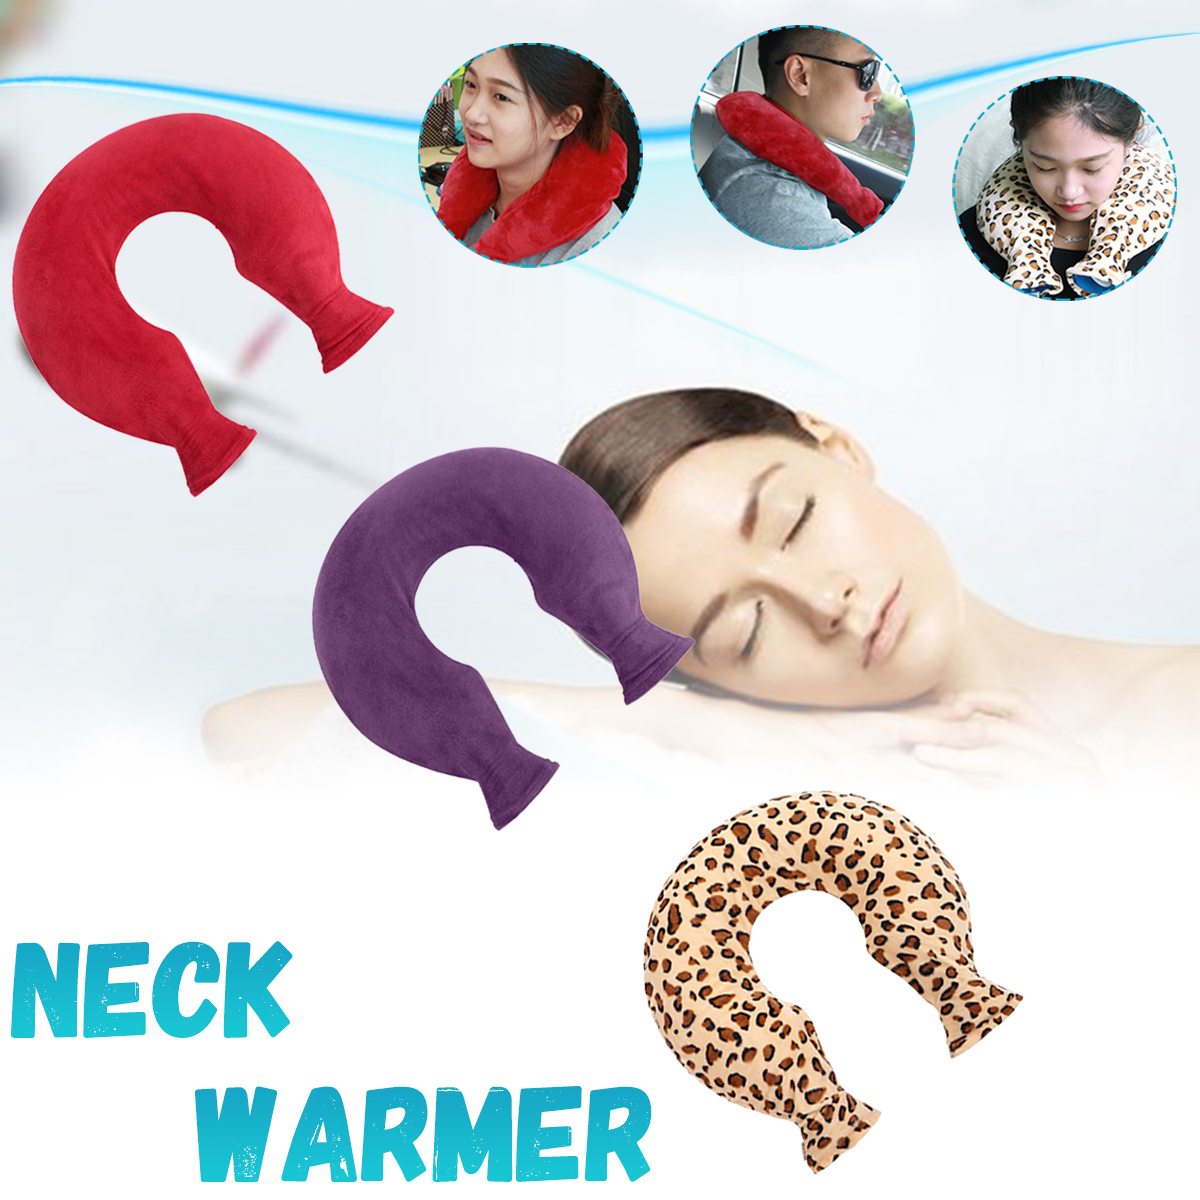 Neck Warmer Hot Water Bottle Bag U Shaped Removable Cosy Fleece Cover Soothing Aching Therapy